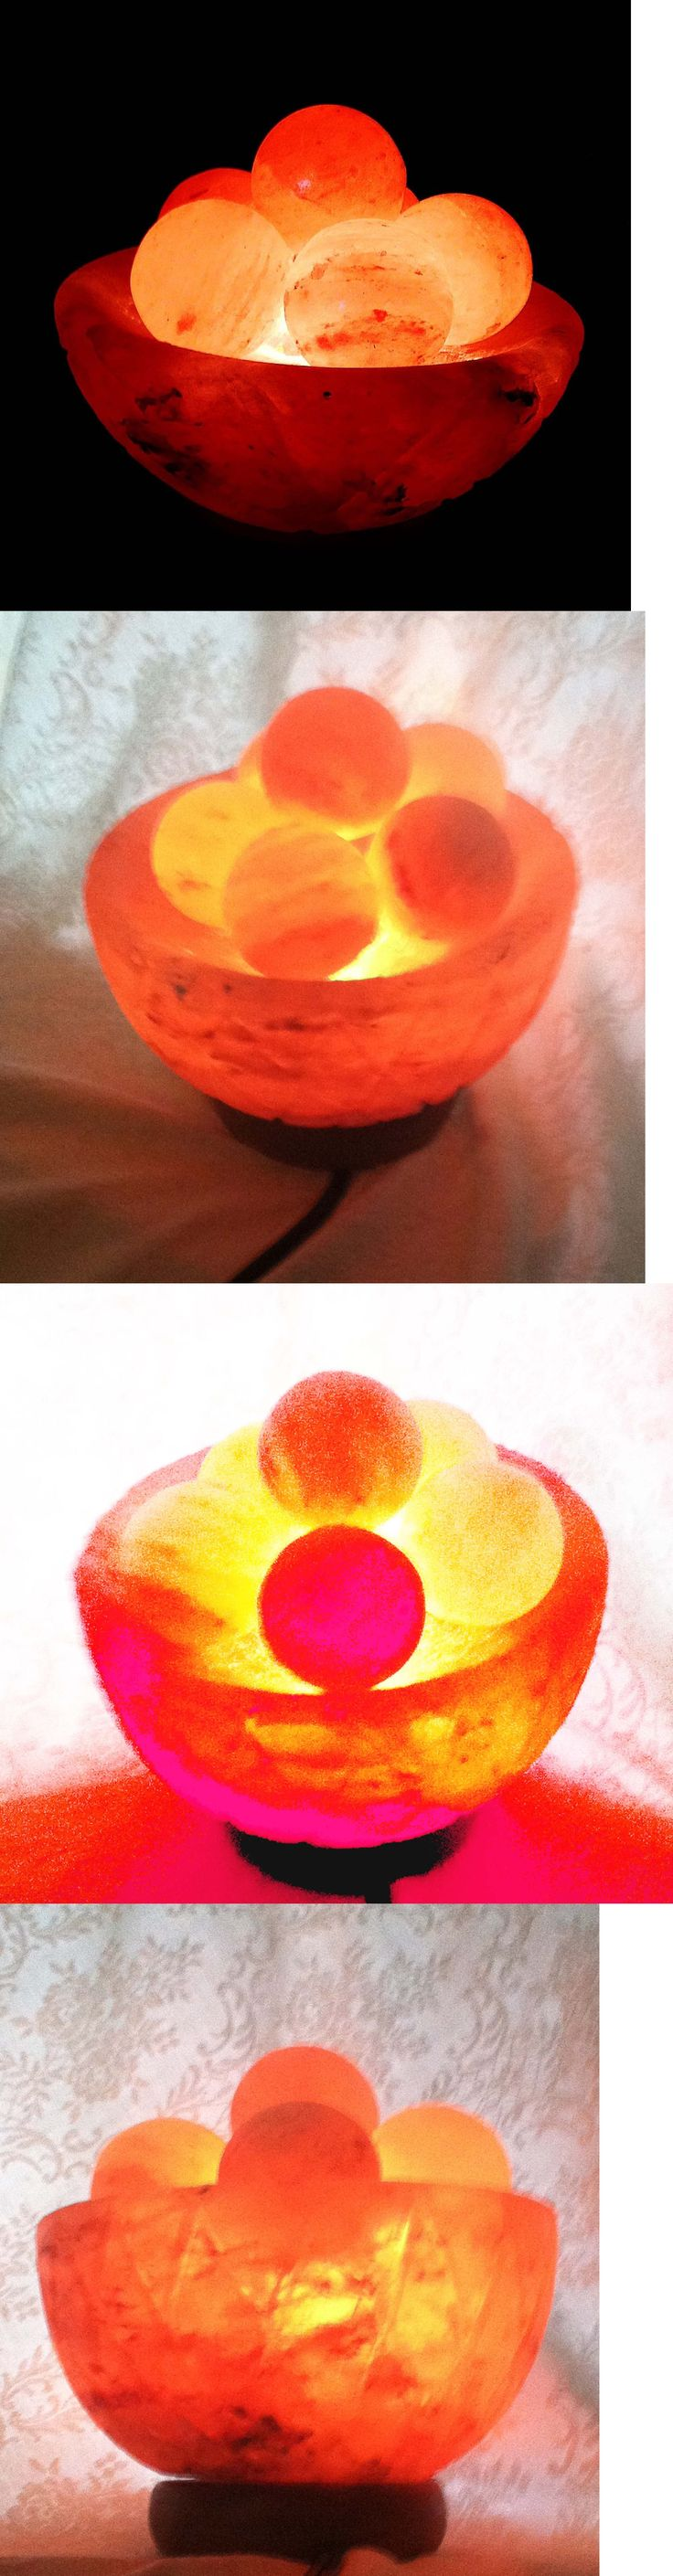 Massage Stones and Rocks: Ionic Air Purifier Pure Himalayan Salt® Fire Bowl With Massage Balls Crystal Sea BUY IT NOW ONLY: $59.0